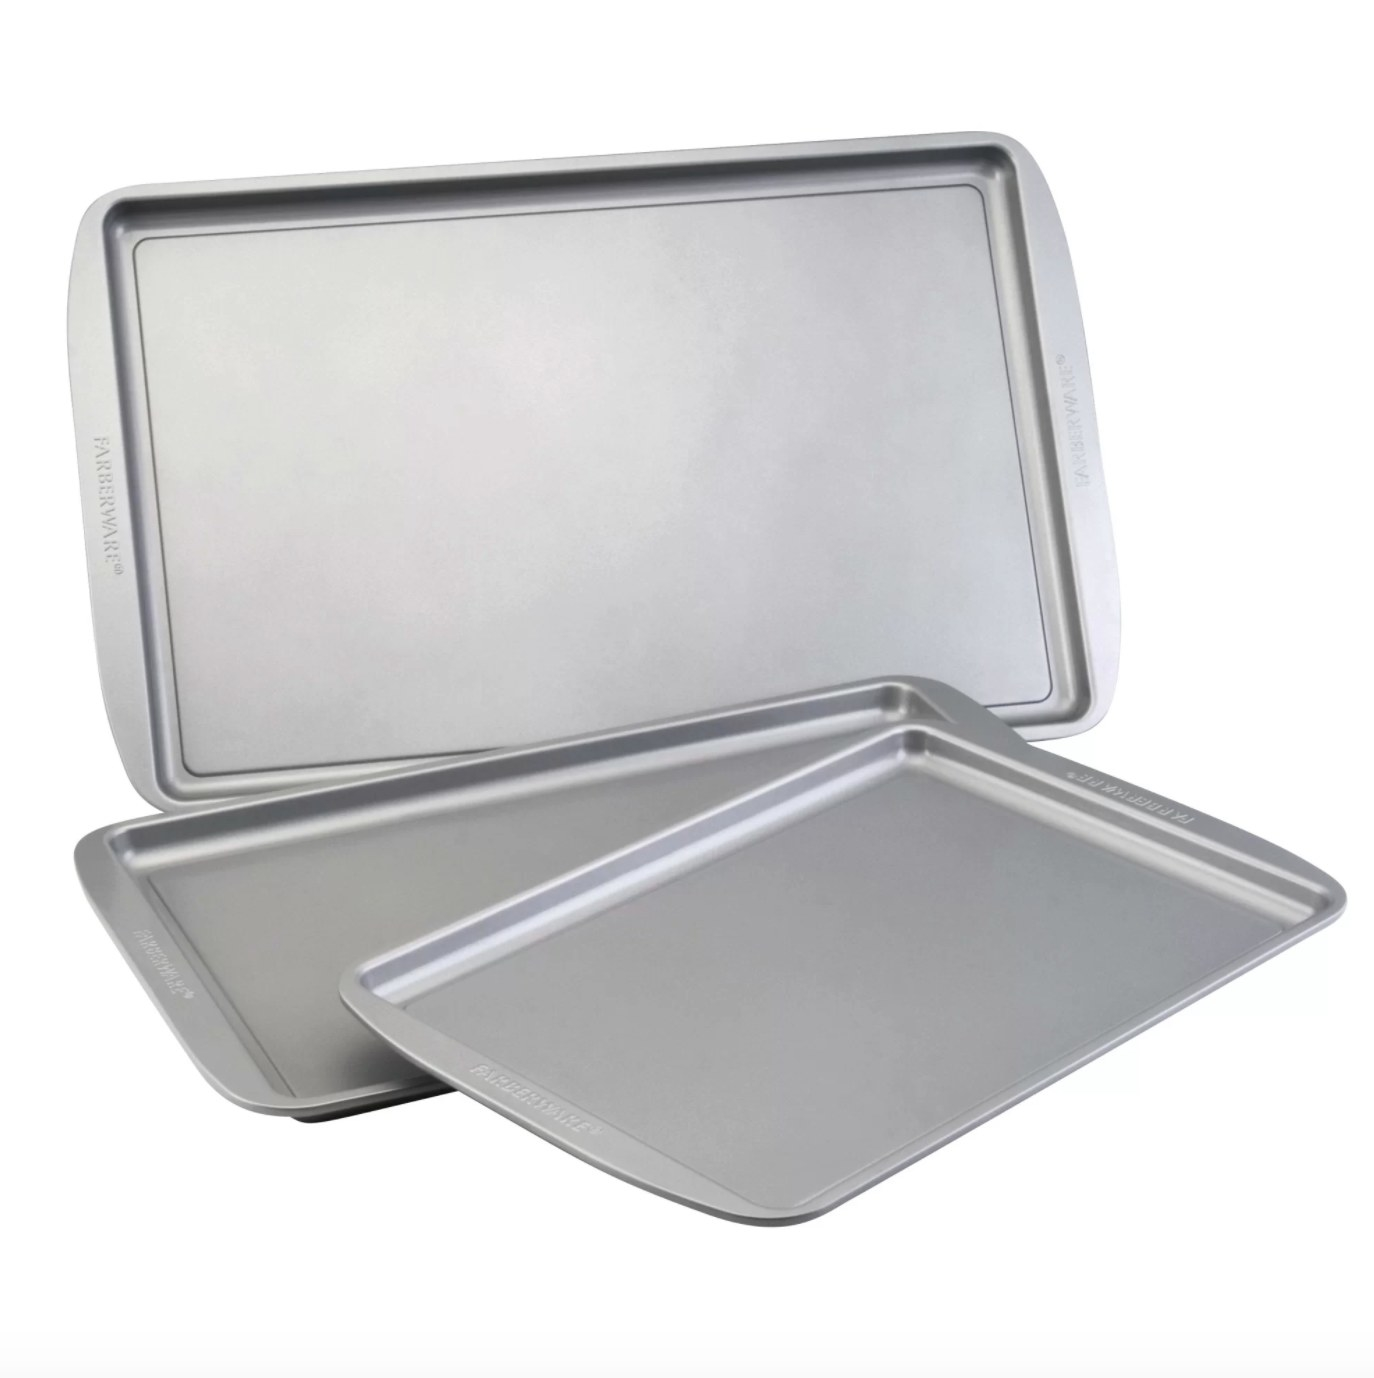 The baking sheet in multiple sizes